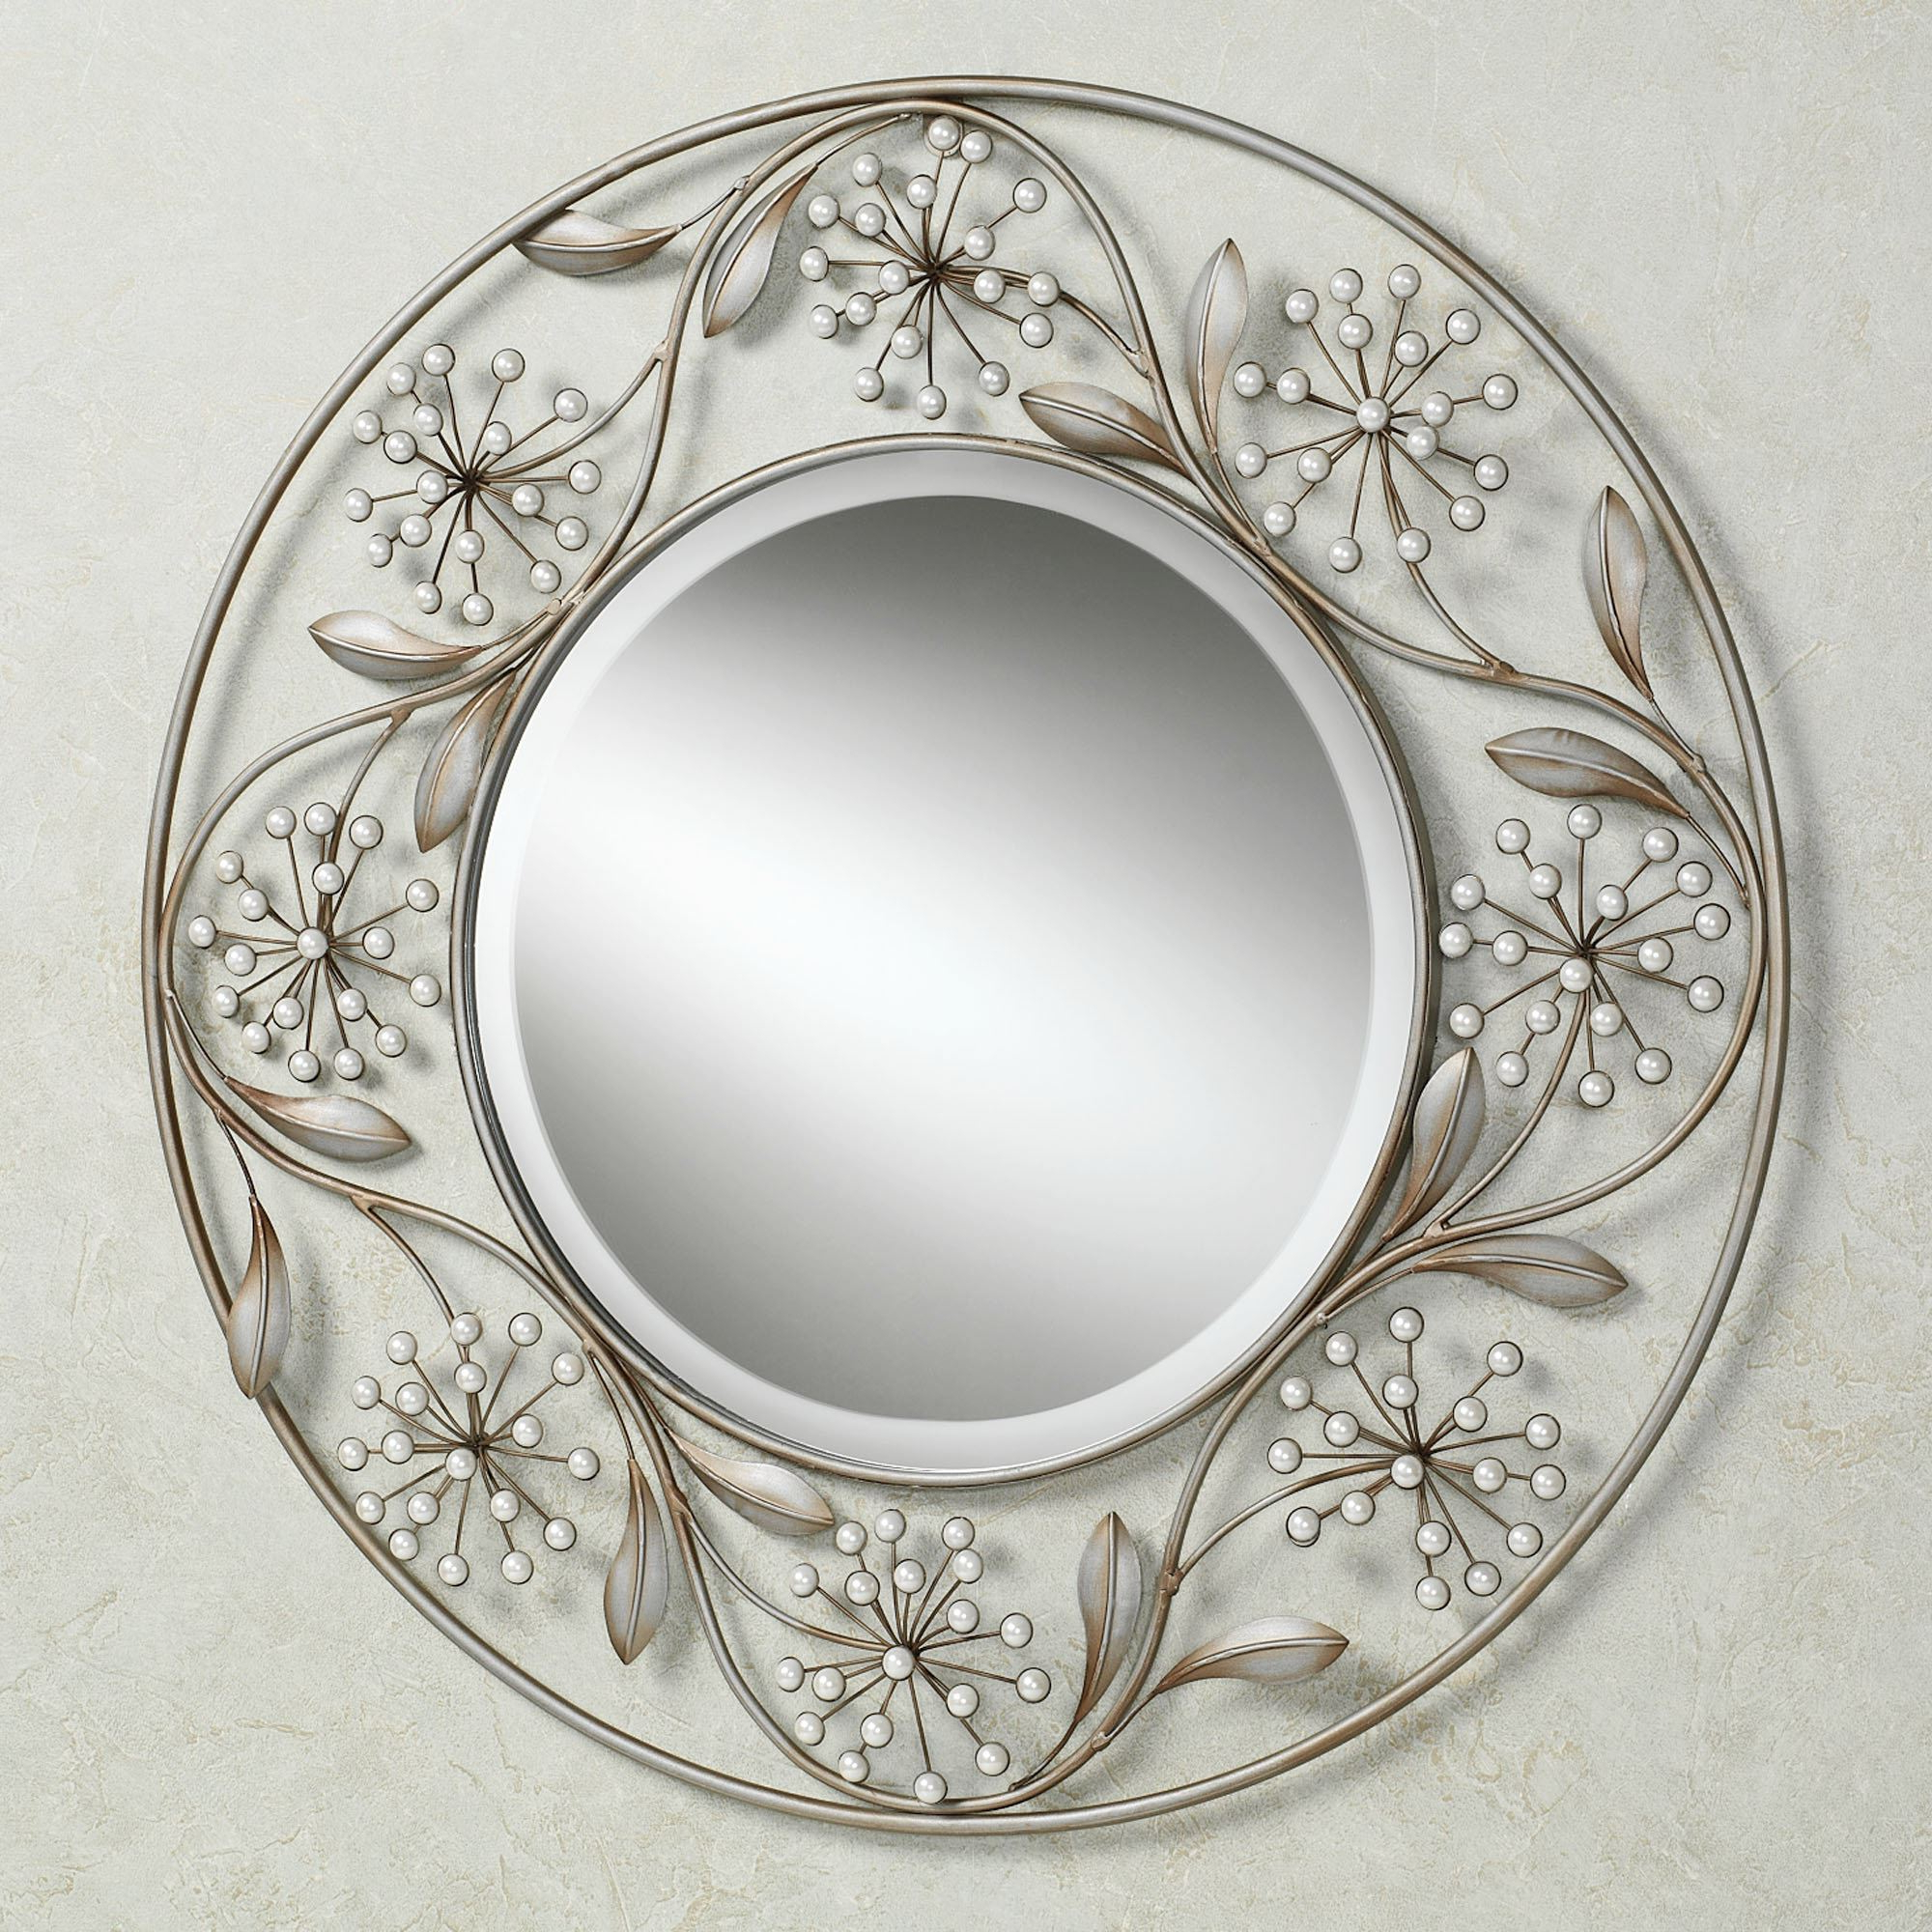 Round Metal Wall Mirrors Throughout Latest Pearlette Round Metal Wall Mirror (View 5 of 20)